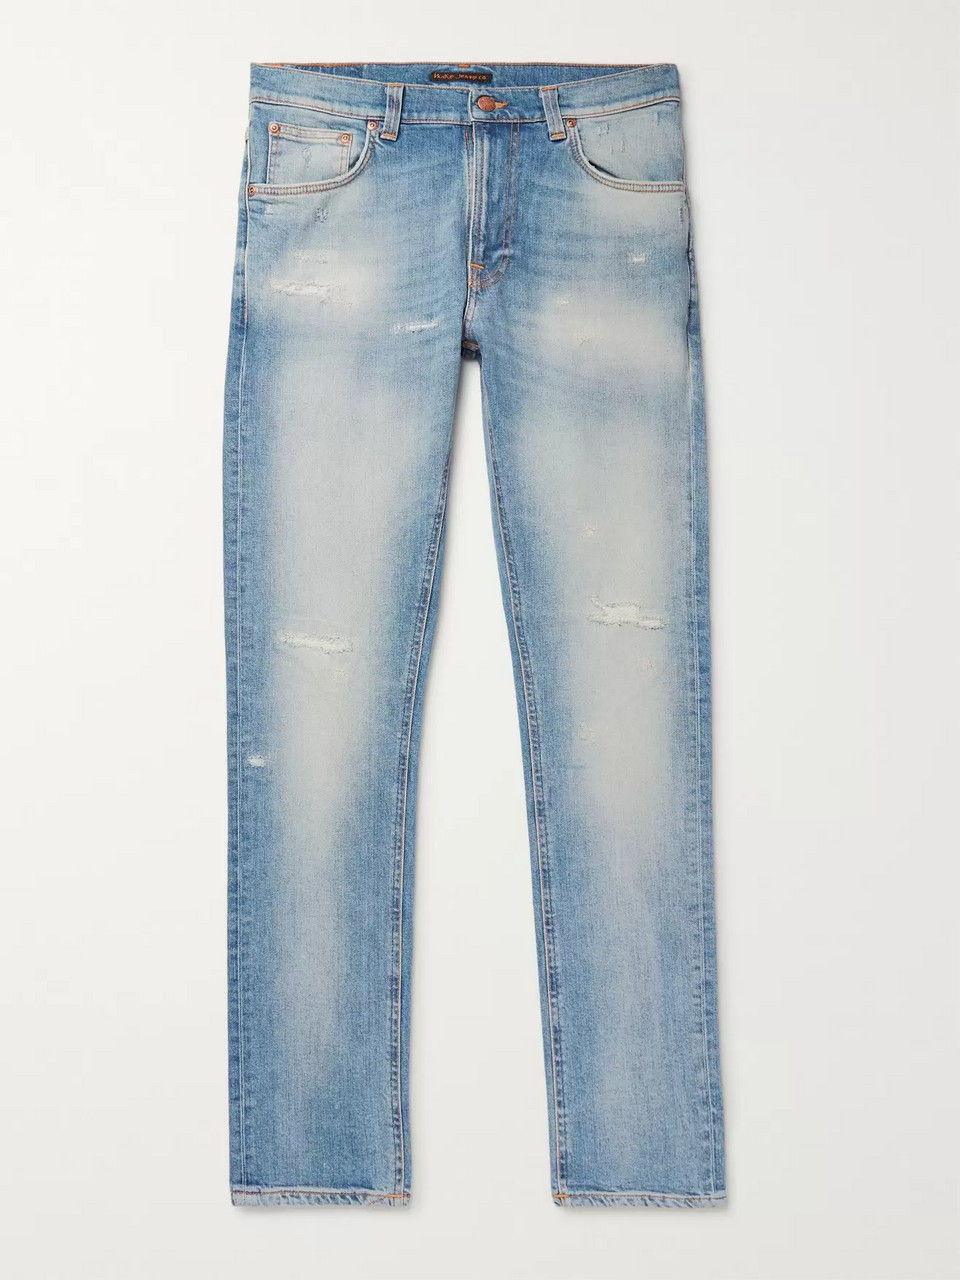 Nudie Jeans Lean Dean Slim-Fit Tapered Distressed Organic Stretch-Denim Jeans